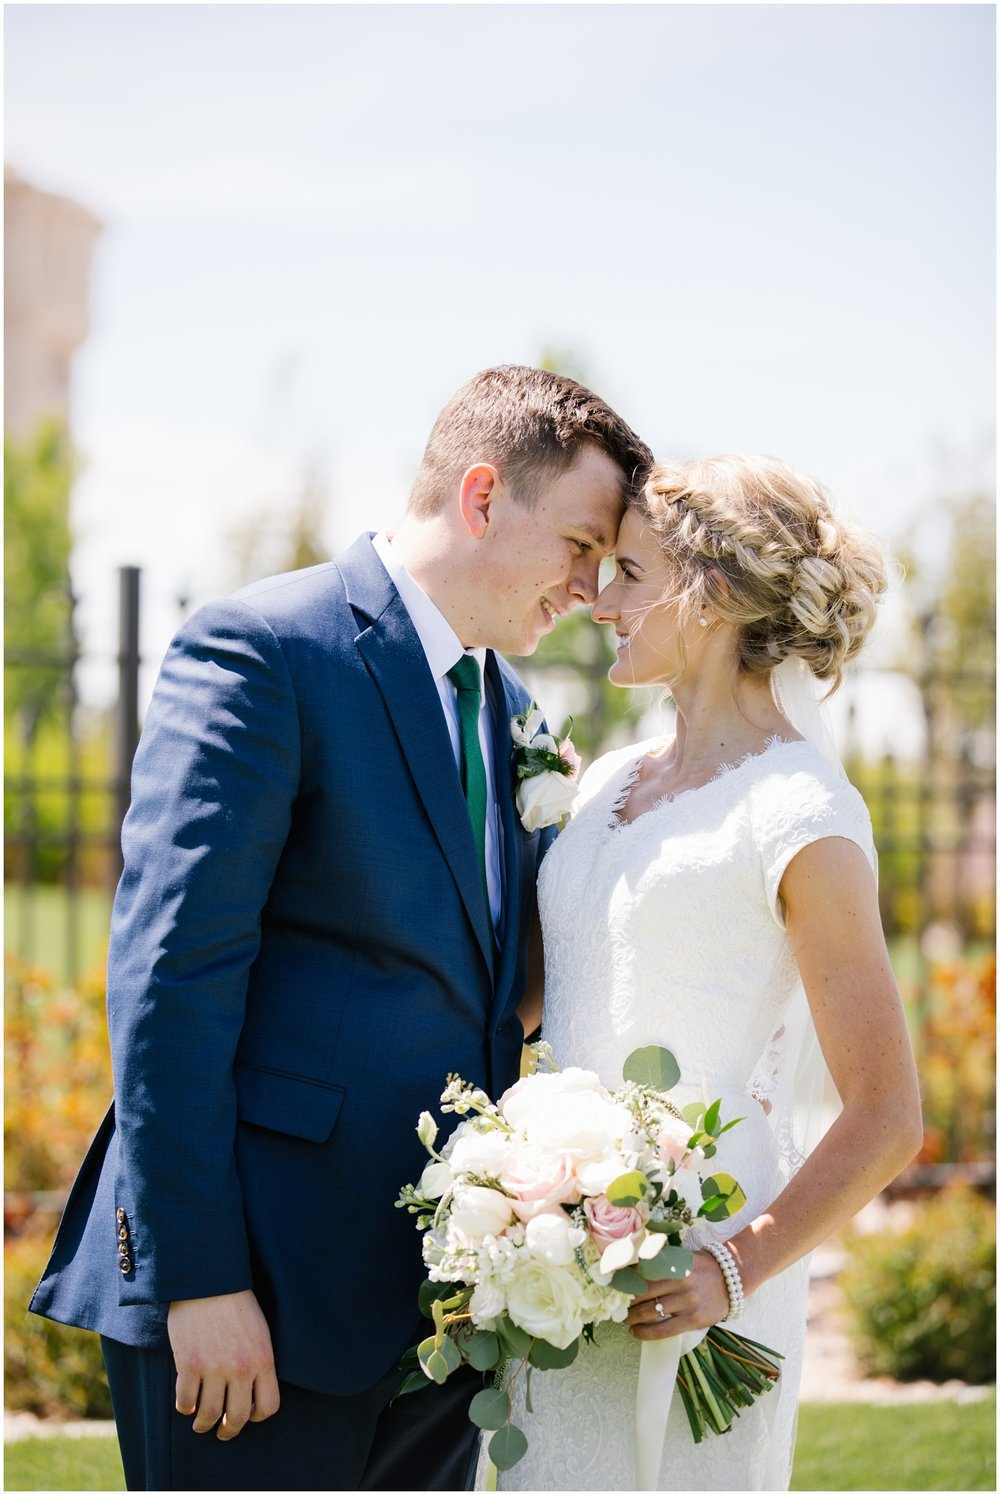 TA-Wedding-137_Lizzie-B-Imagery-Utah-Wedding-Photographer-Park-City-Salt-Lake-City-Thanksgiving-Point-Ashton-Gardens-Lehi-Utah.jpg